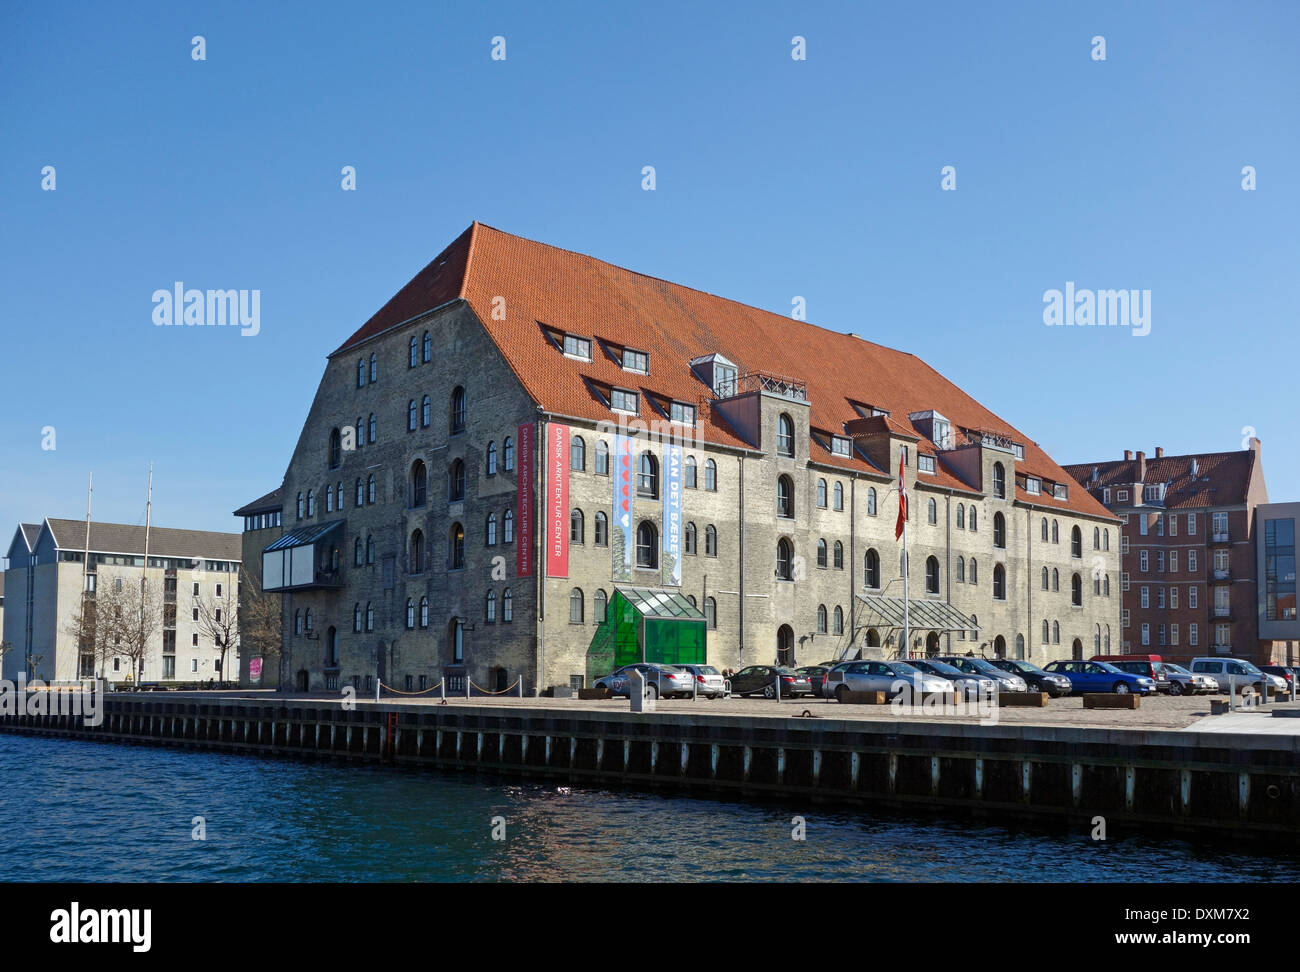 Danish Centre of Architecture (Dansk Arkitektur Center) in old warehouse Copenhagen Harbour Christianshavn Copenhagen Denmark - Stock Image